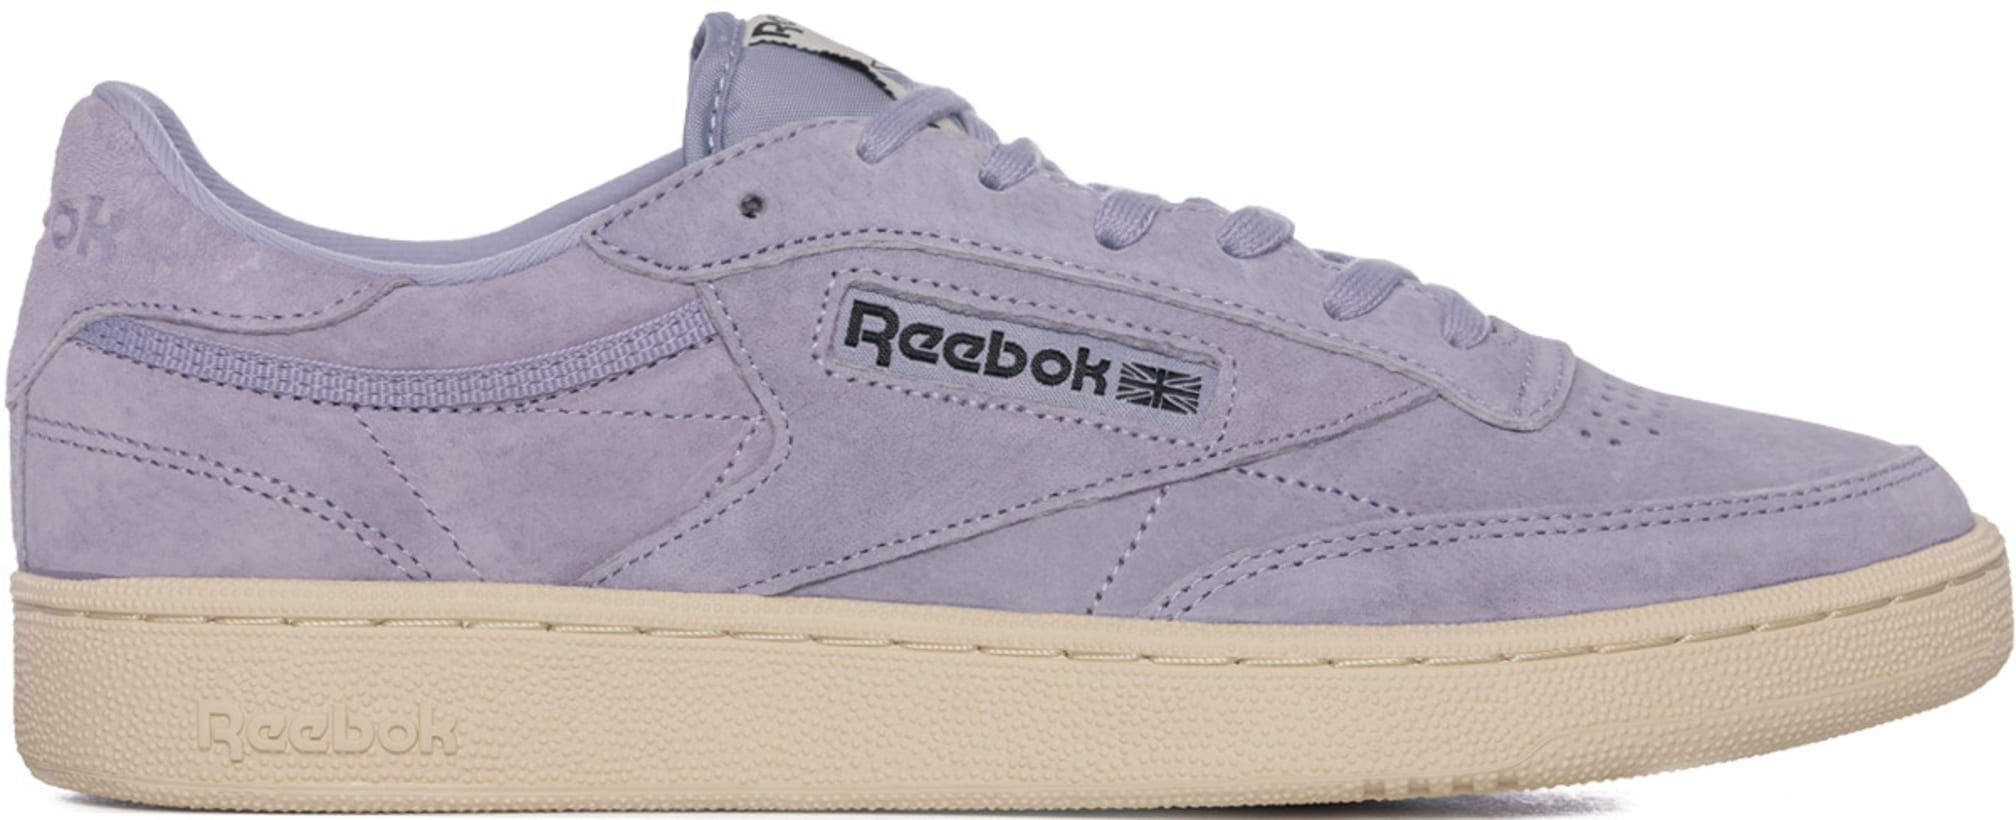 4b930e9d85d Reebok  Club C 85 Pastels - Moon Violet Off White